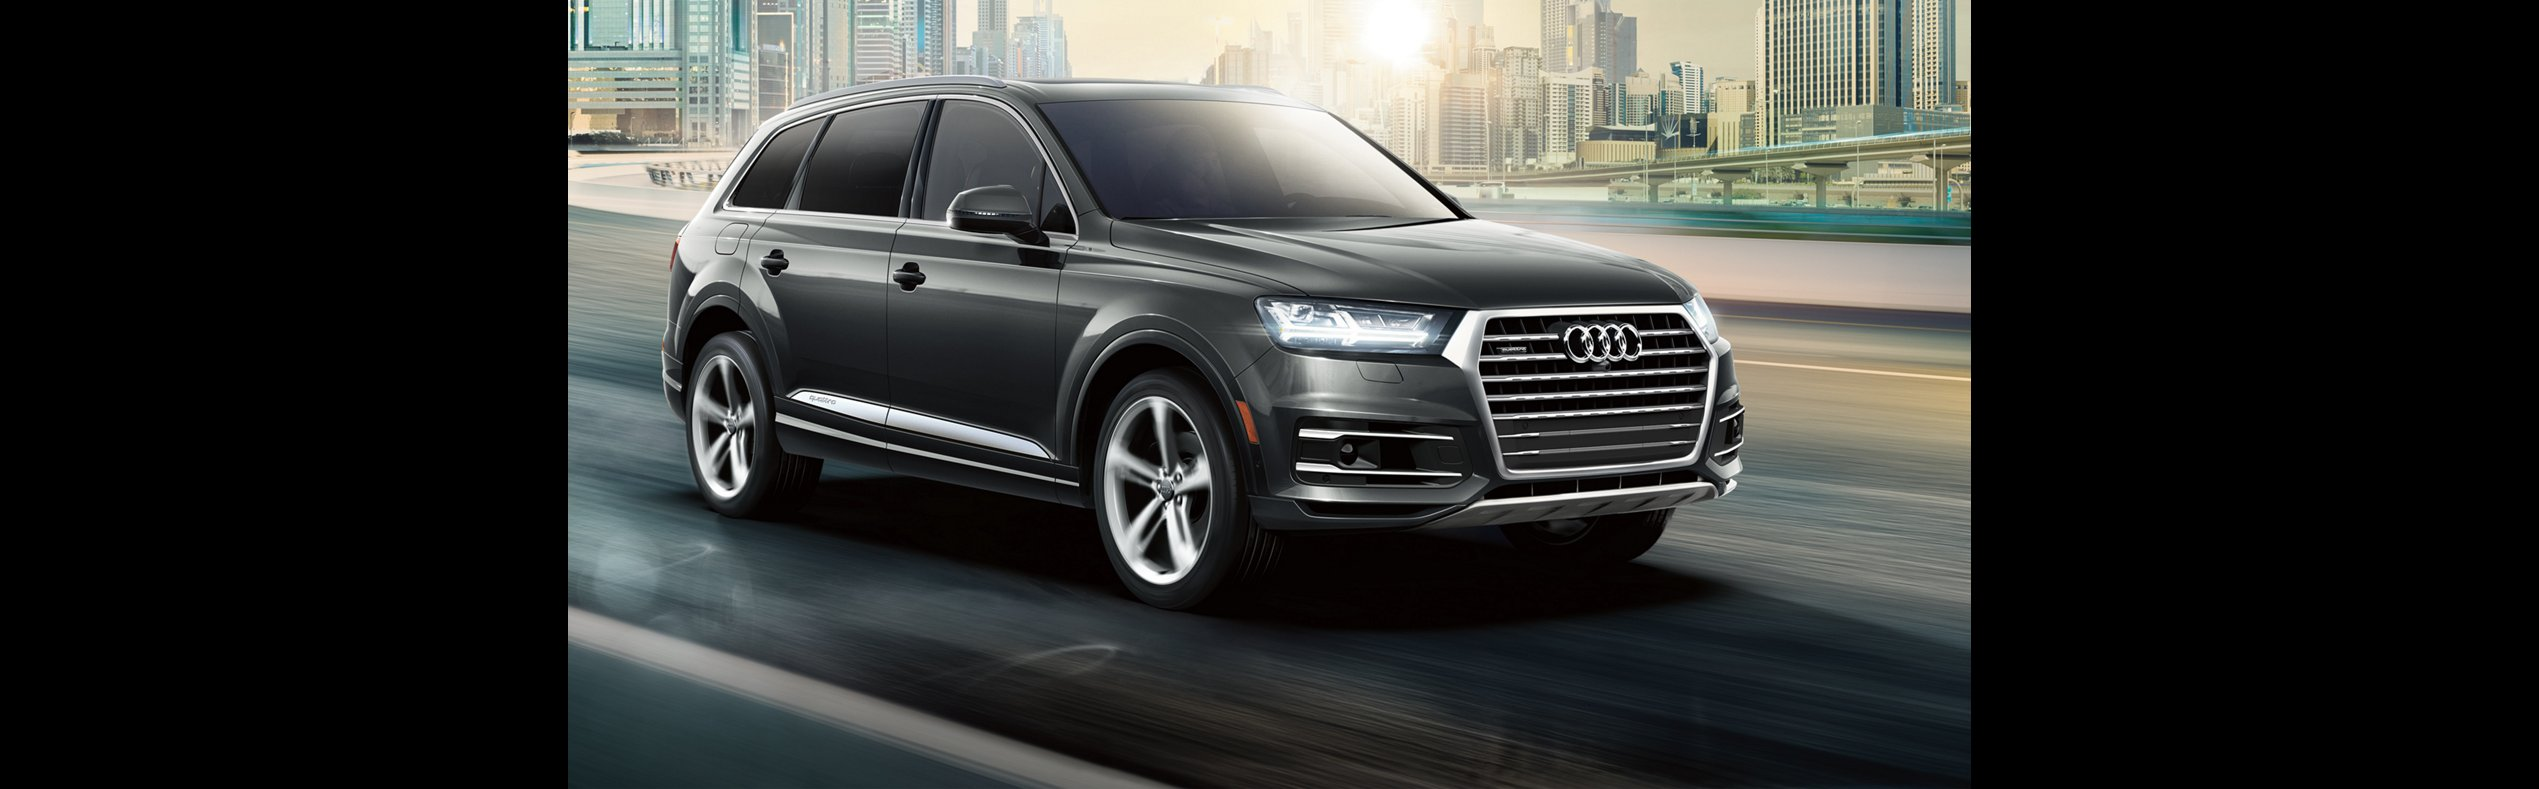 2019 Audi Q7 Best Midsize Luxury SUV for 2019